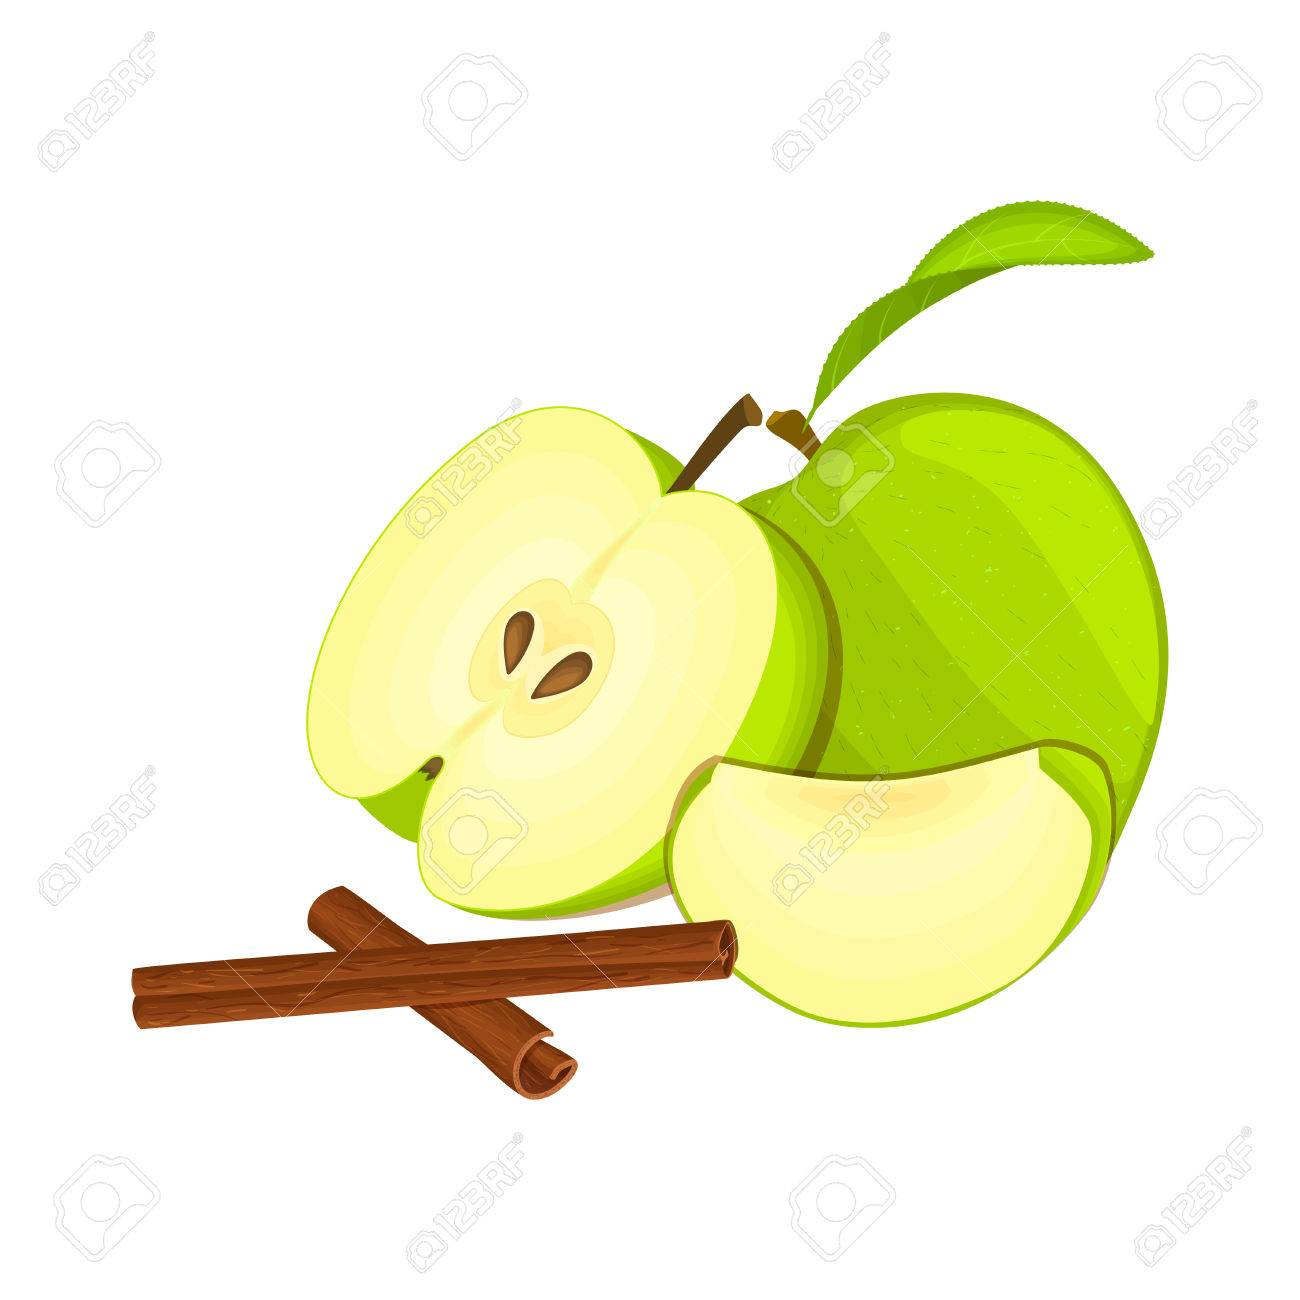 1300x1300 Vector Drawing Of A Few Apples With Spice. Green Apple Fruits